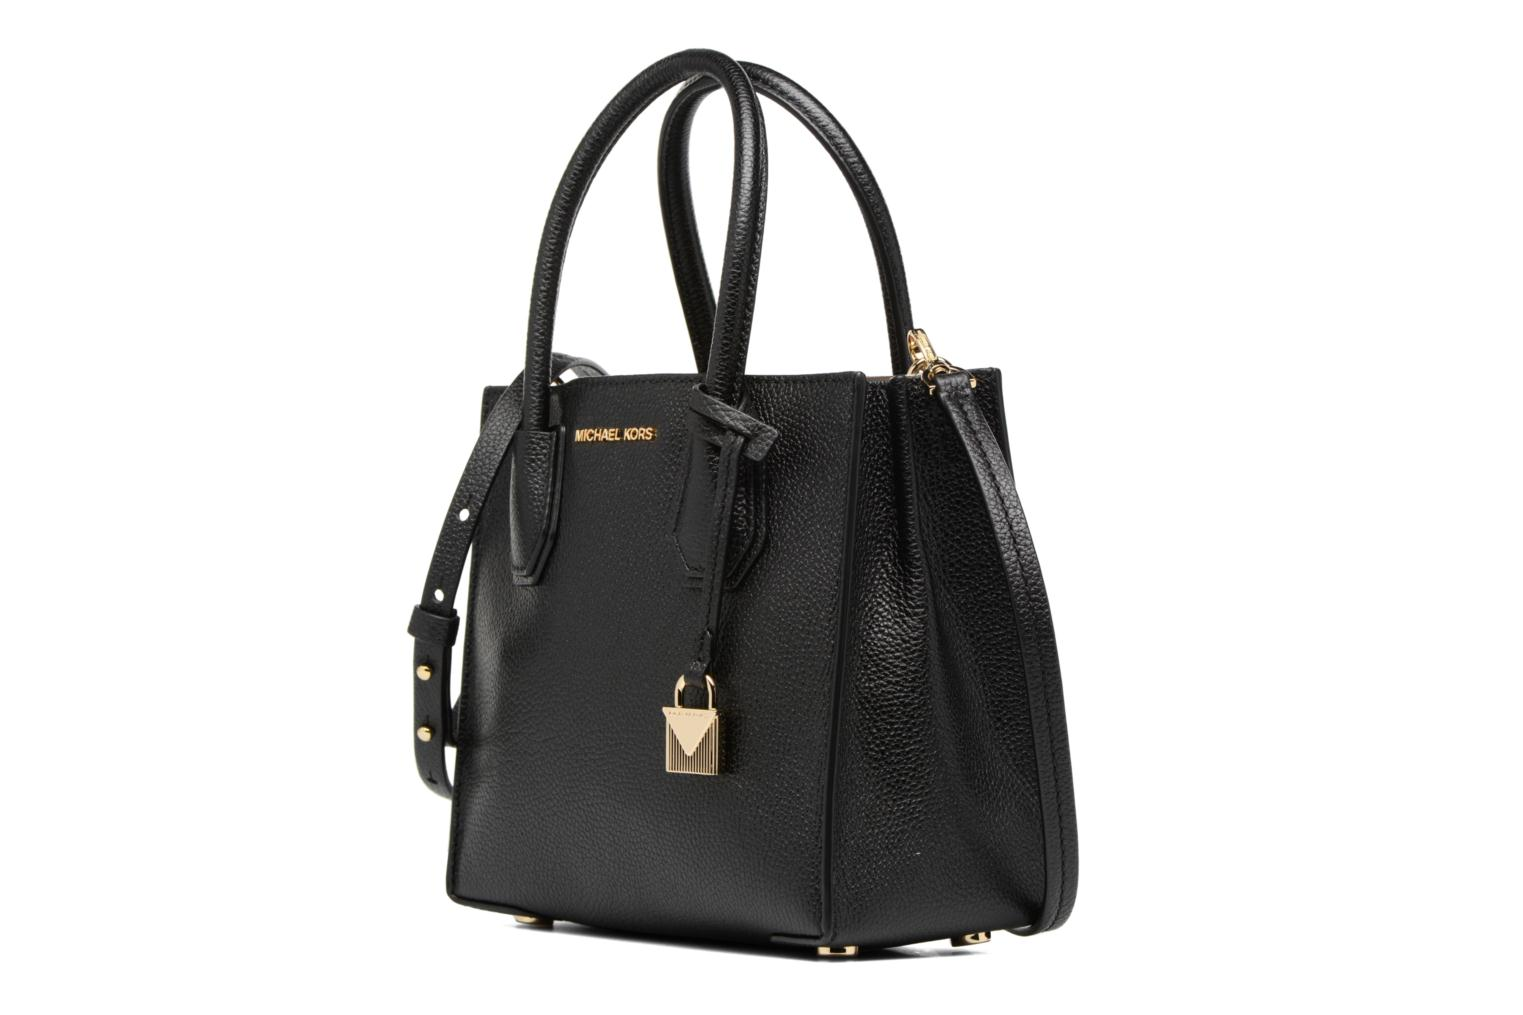 MERCER MD MESSENGER 001 black